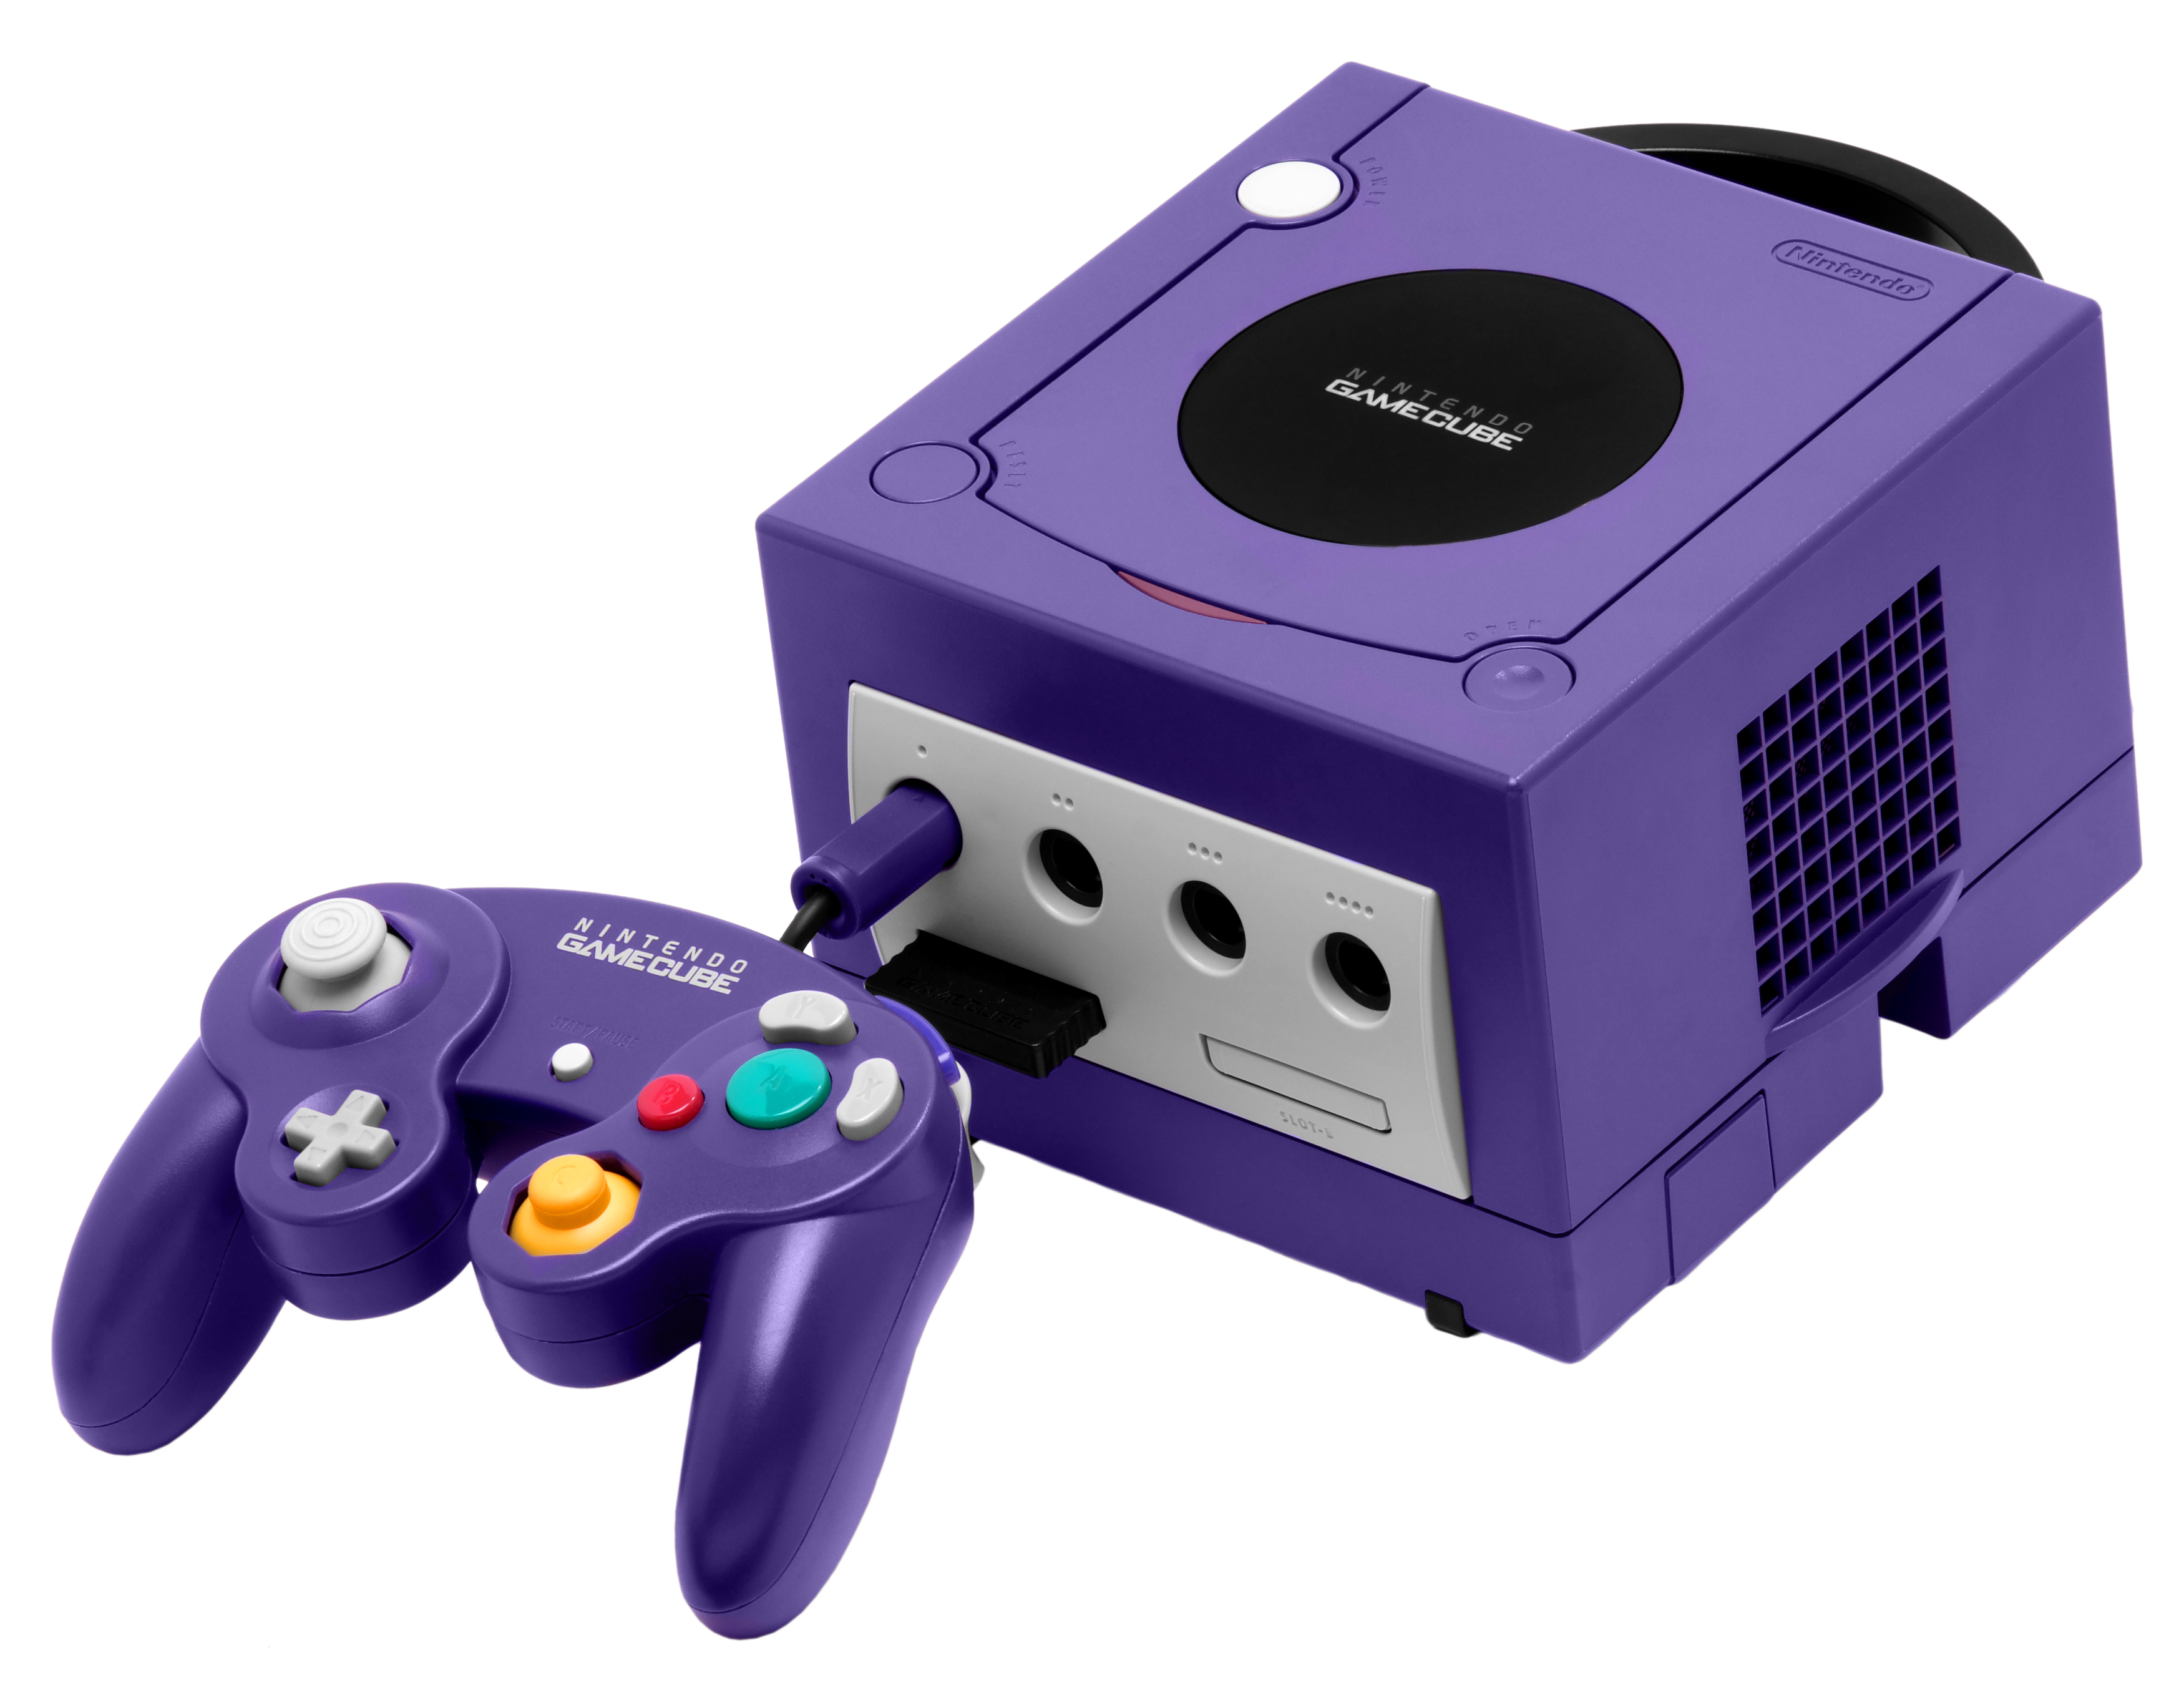 Gamecube transparent fake. Nintendo purple and controller